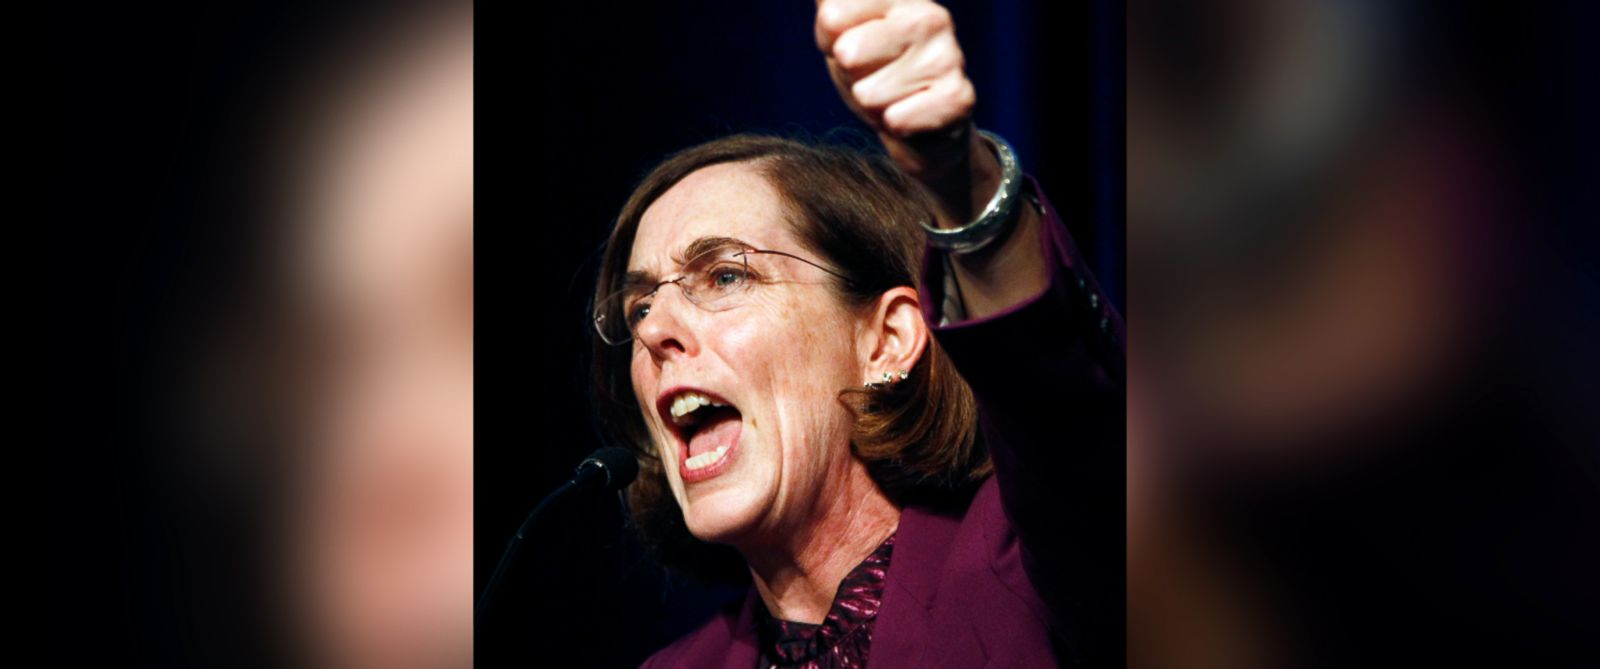 PHOTO: In this Nov. 6, 2012 file photo, Oregon Democratic Secretary of State Kate Brown celebrates at the podium after winning her race at Democratic headquarters in Portland, Ore.